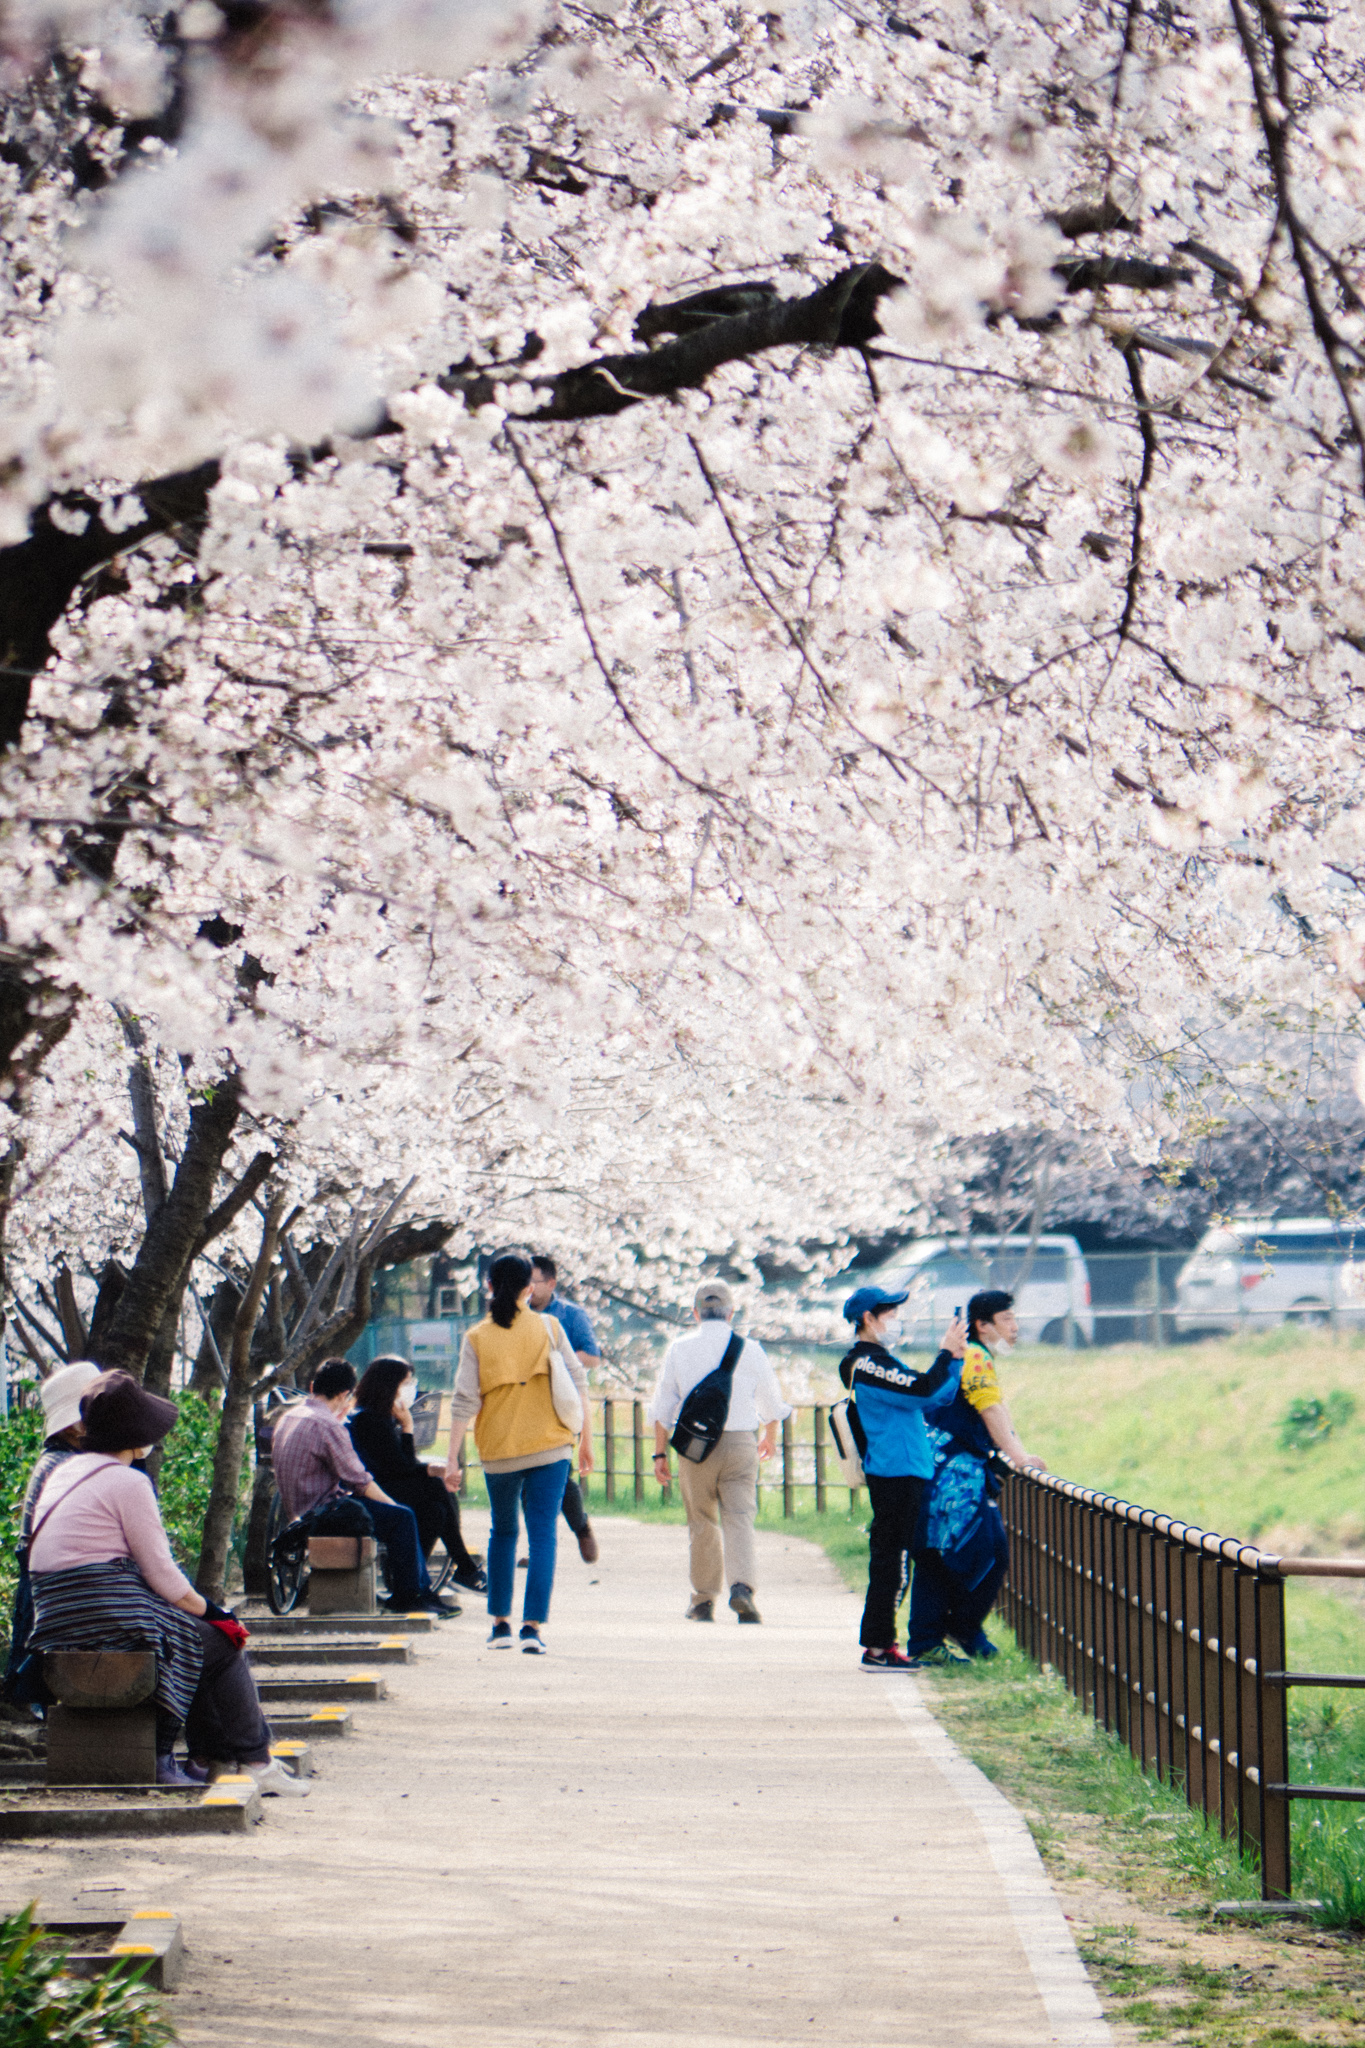 People viewing cherry blossoms in Japan